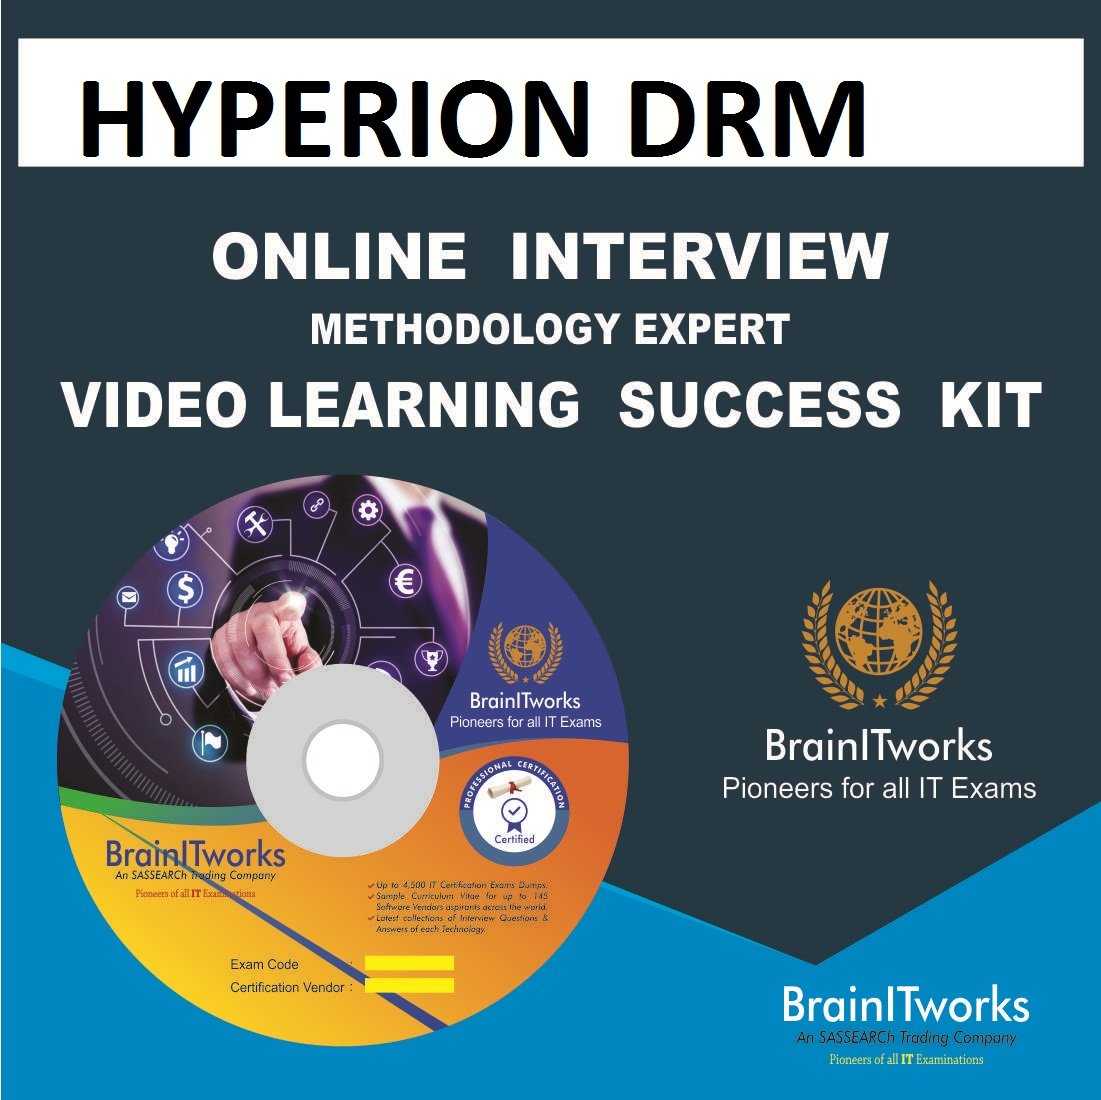 Amazon com: HYPERION DRM Online Interview video learning